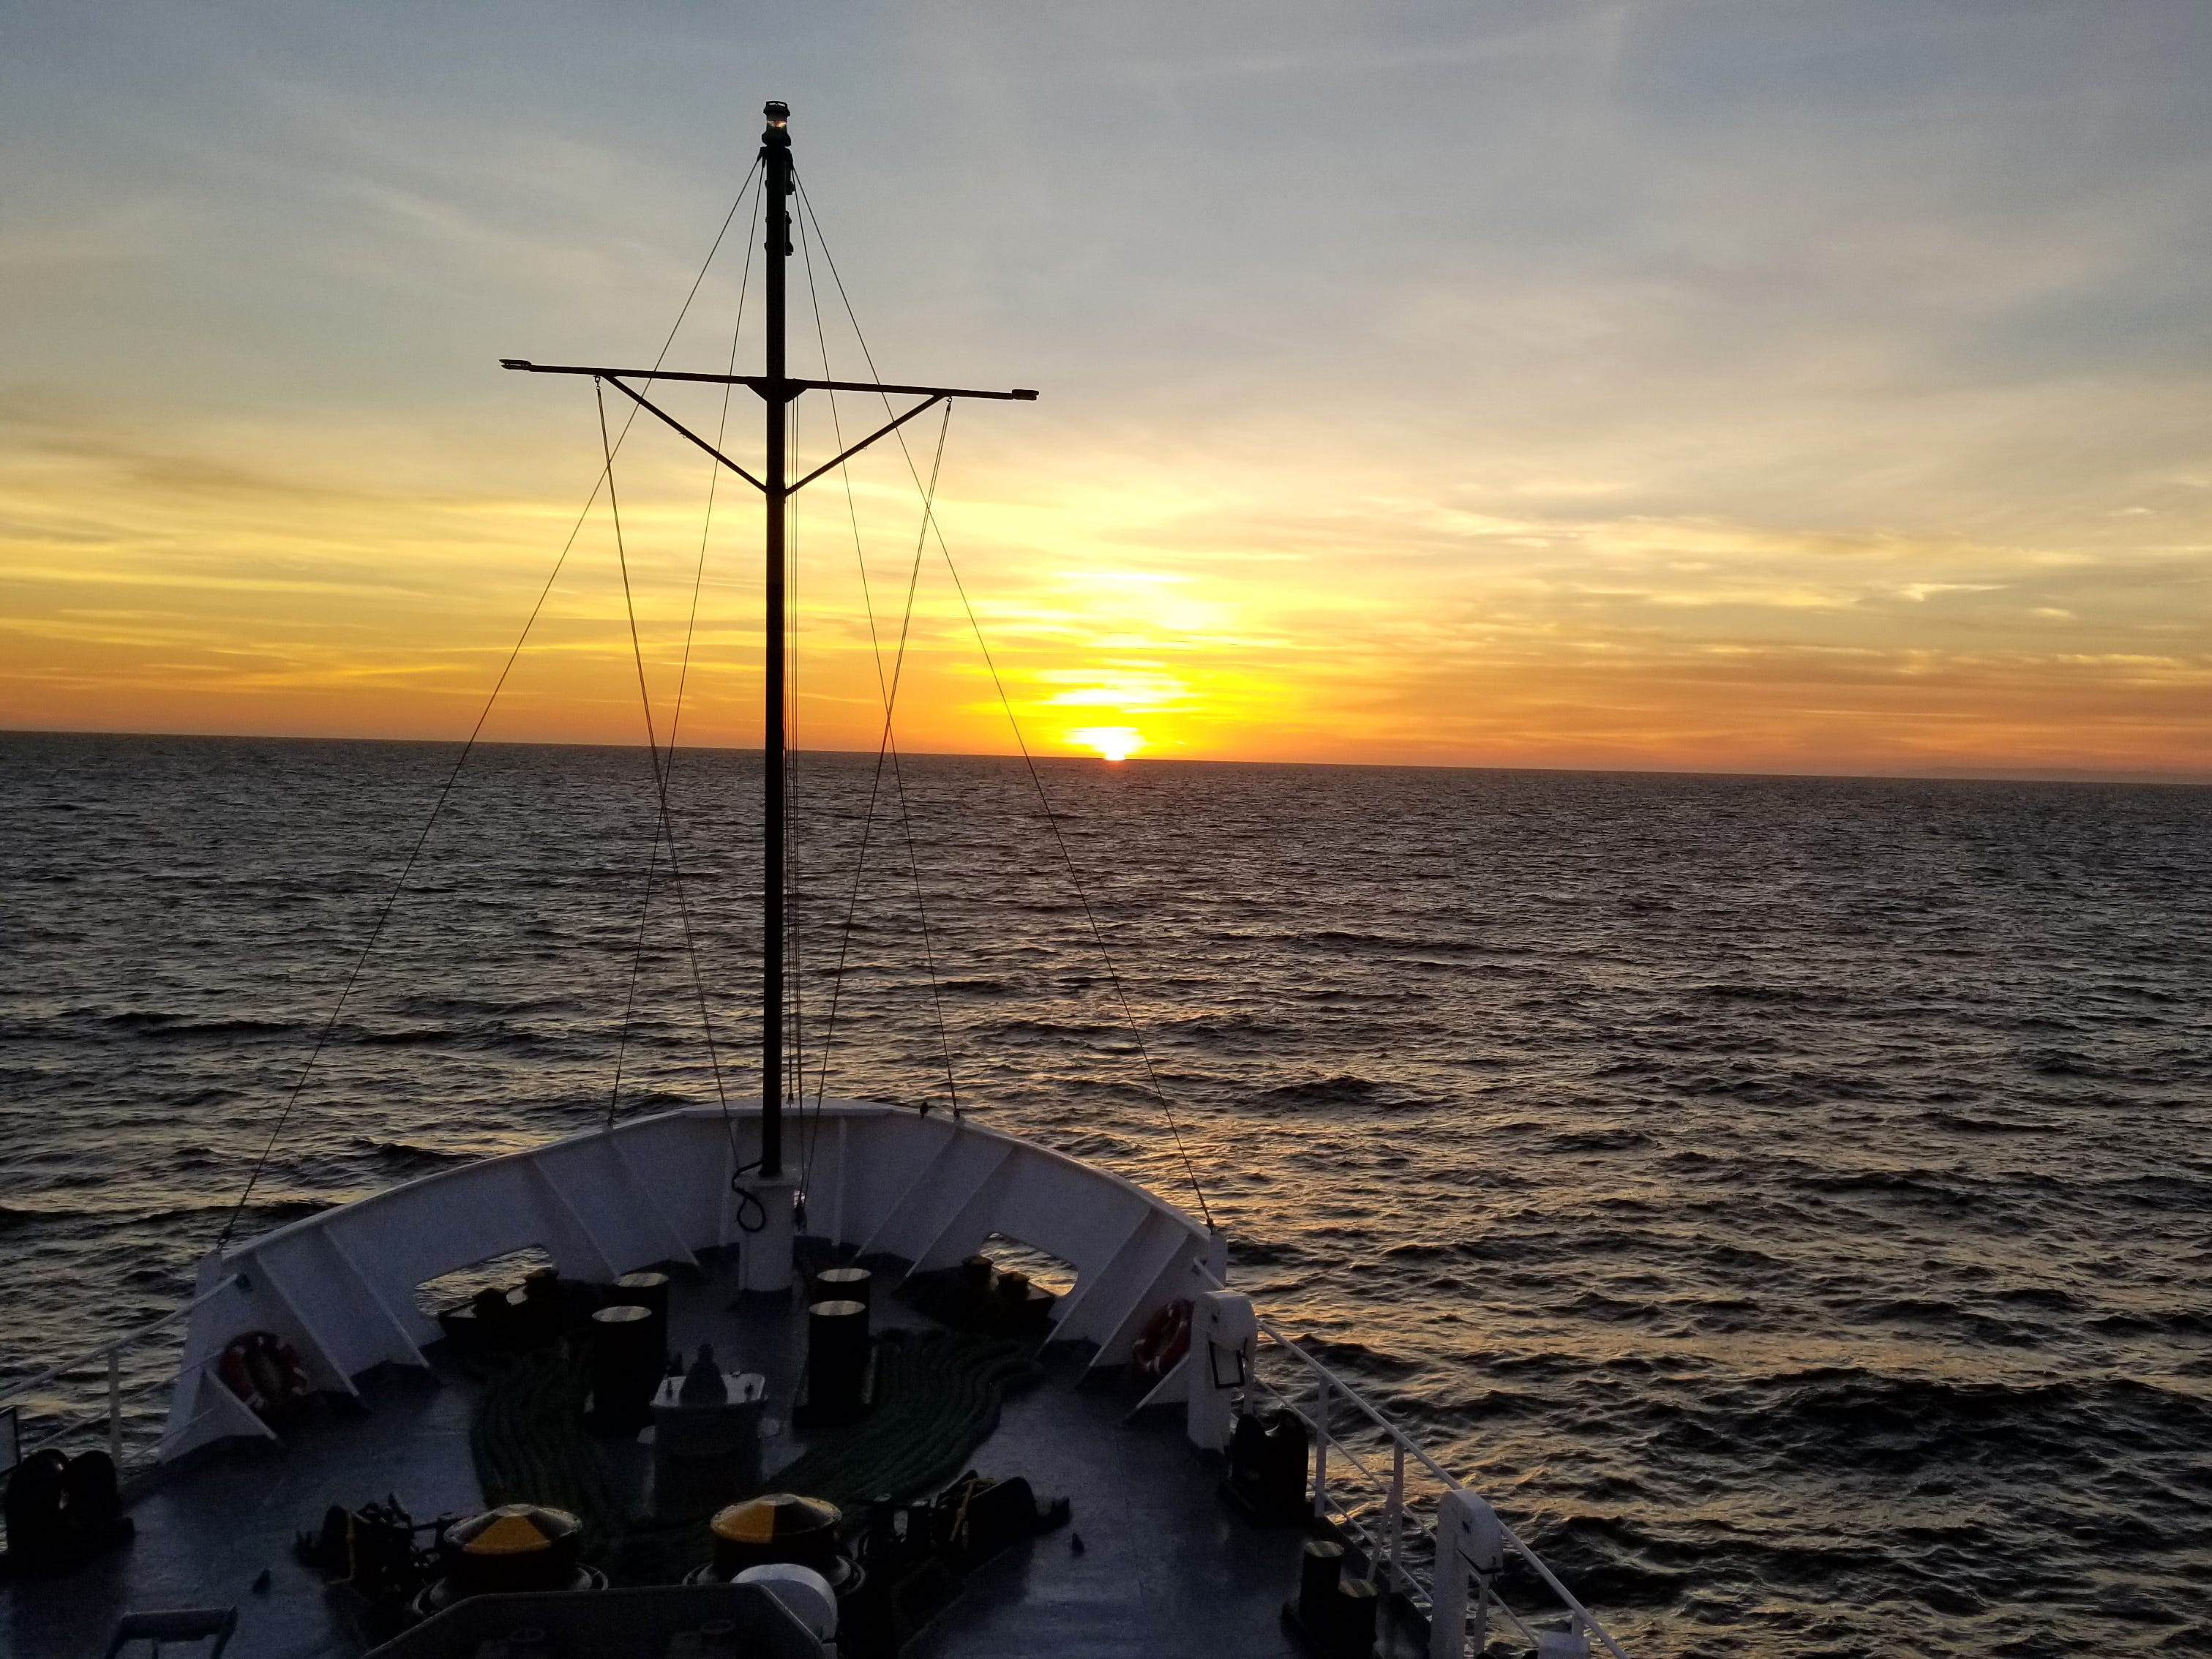 The final sunset, viewed over the bow. Santa Cruz Island is just visible to the right.